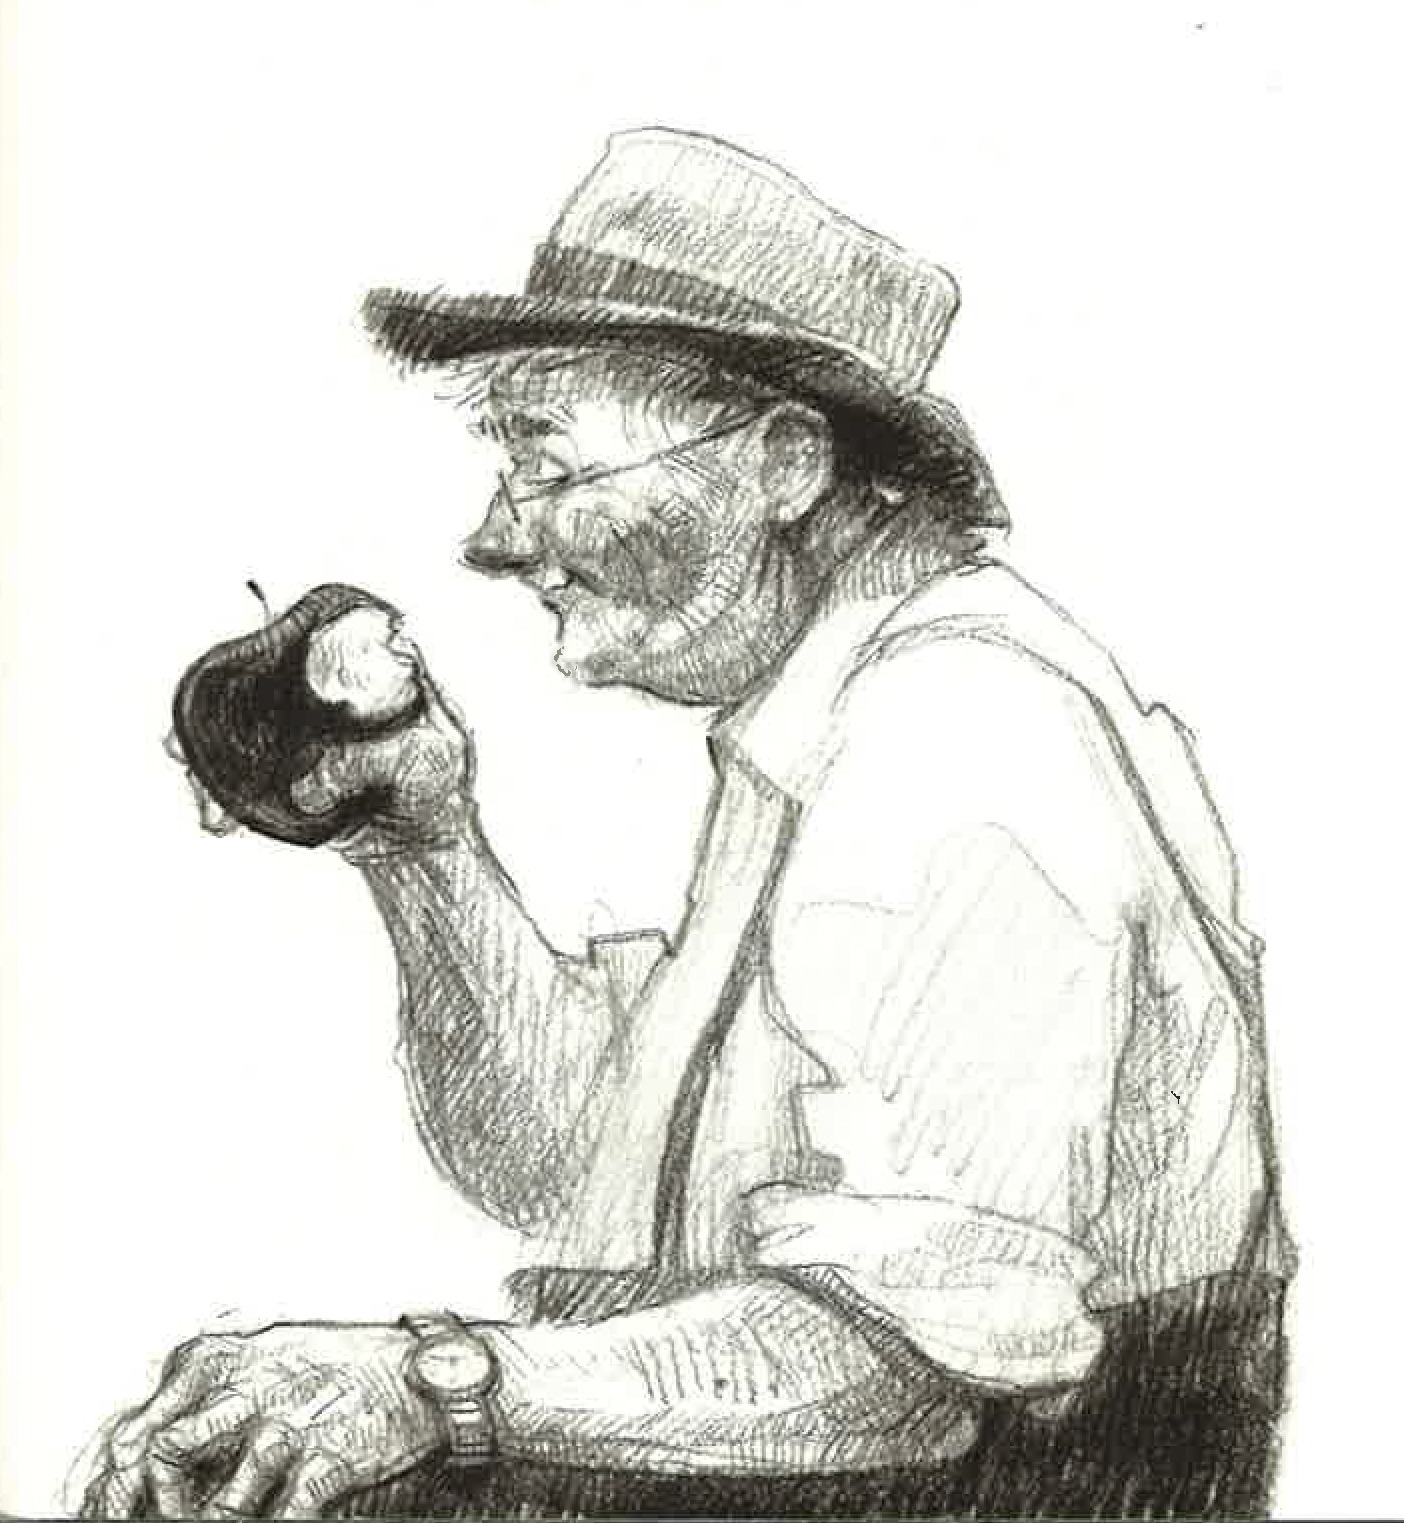 Illustration of the character, Arthur, eating an apple in the book Applesauce Weather. Published by Candlewick Press.